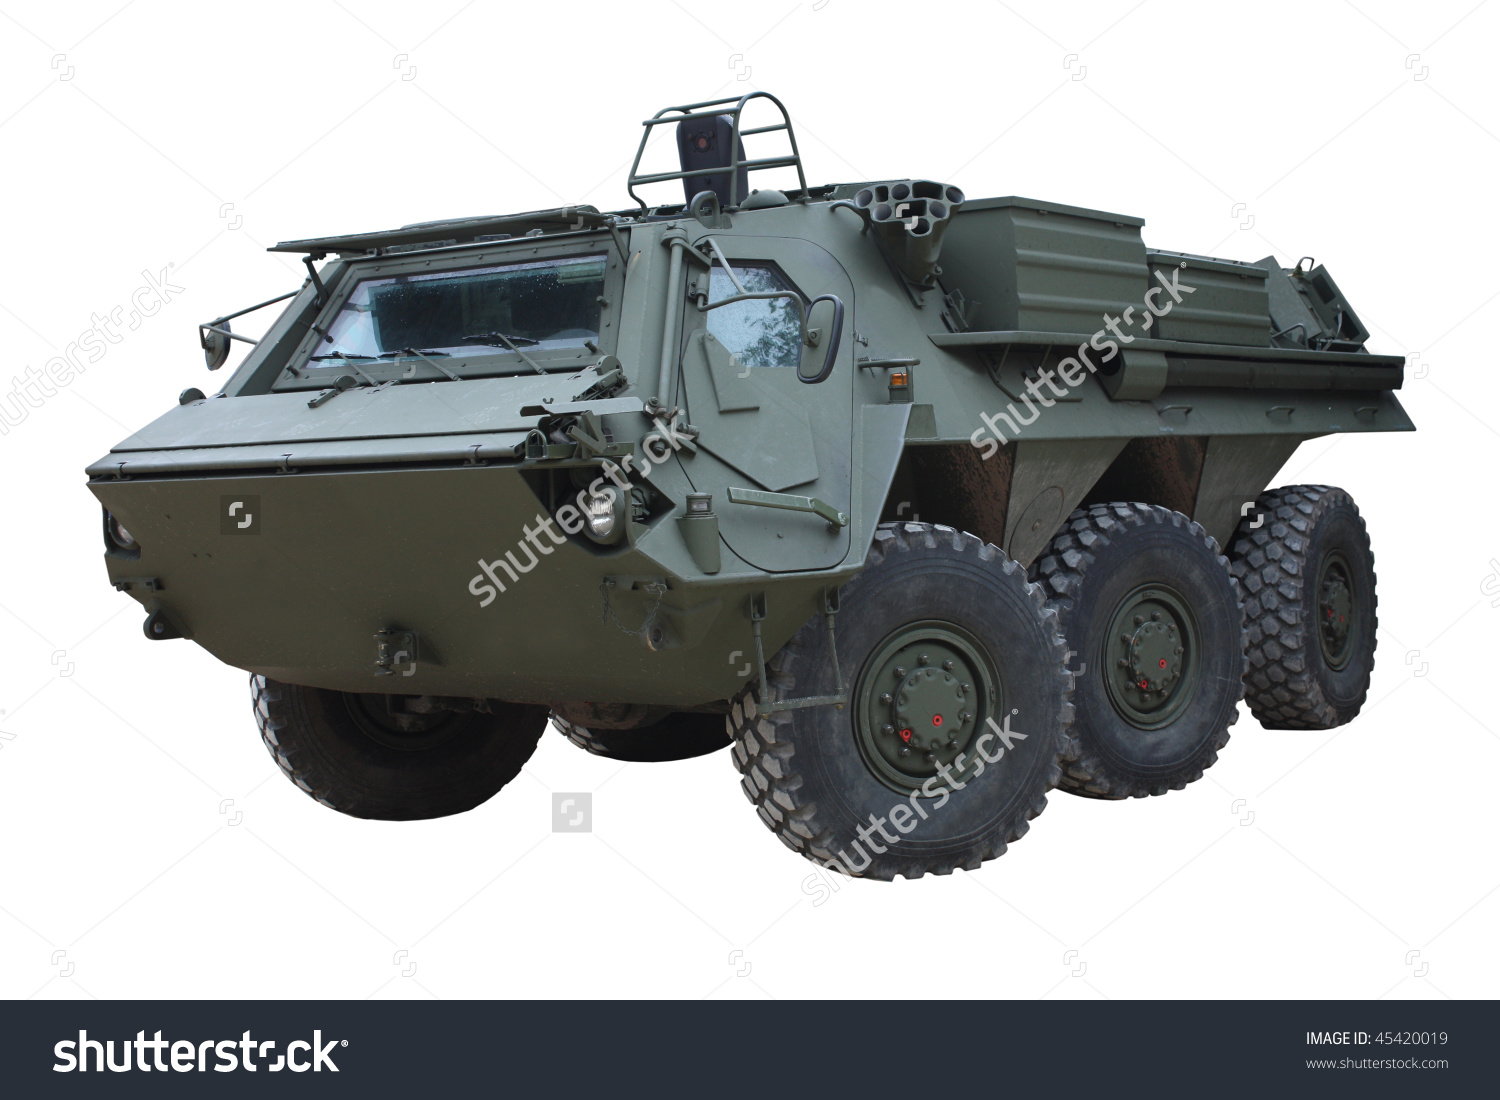 A Large Dark Green Military Armoured Vehicle. Stock Photo 45420019.